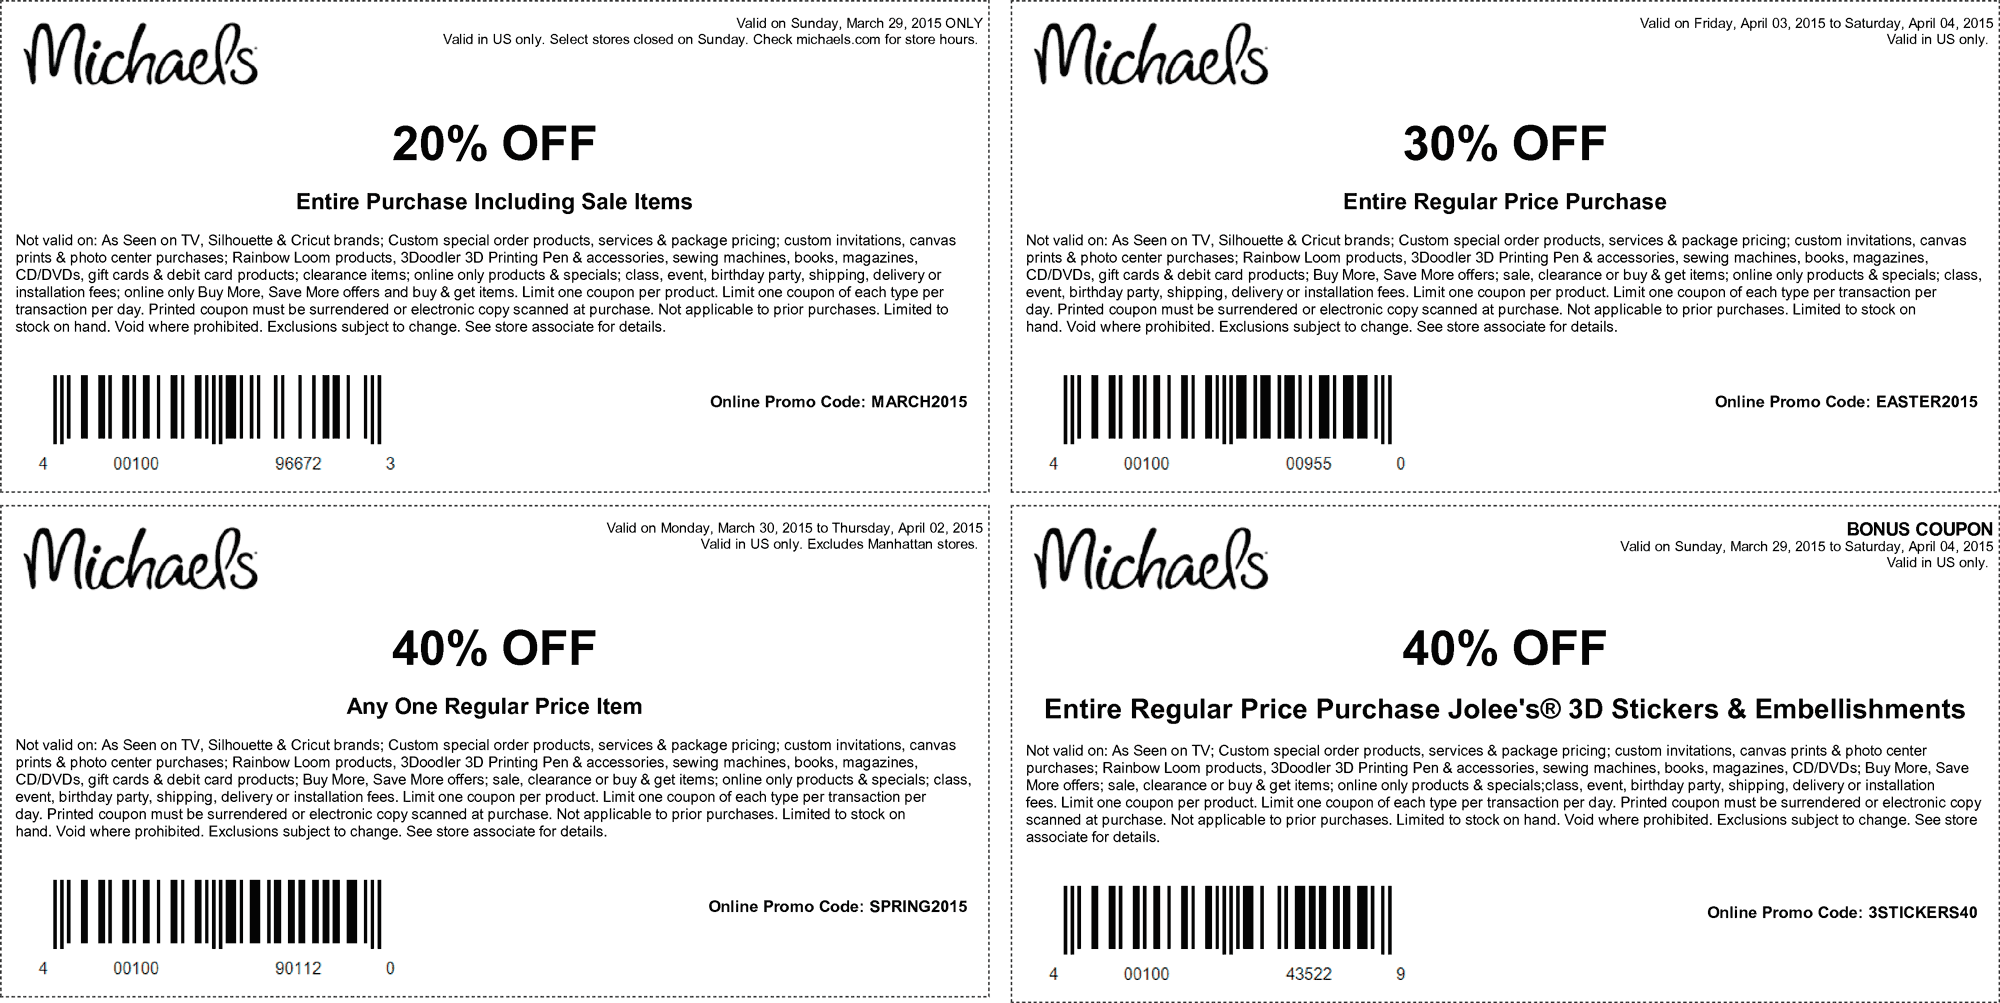 Michaels Coupon February 2017 20-40% off at Michaels, or online via promo code SPRING2015